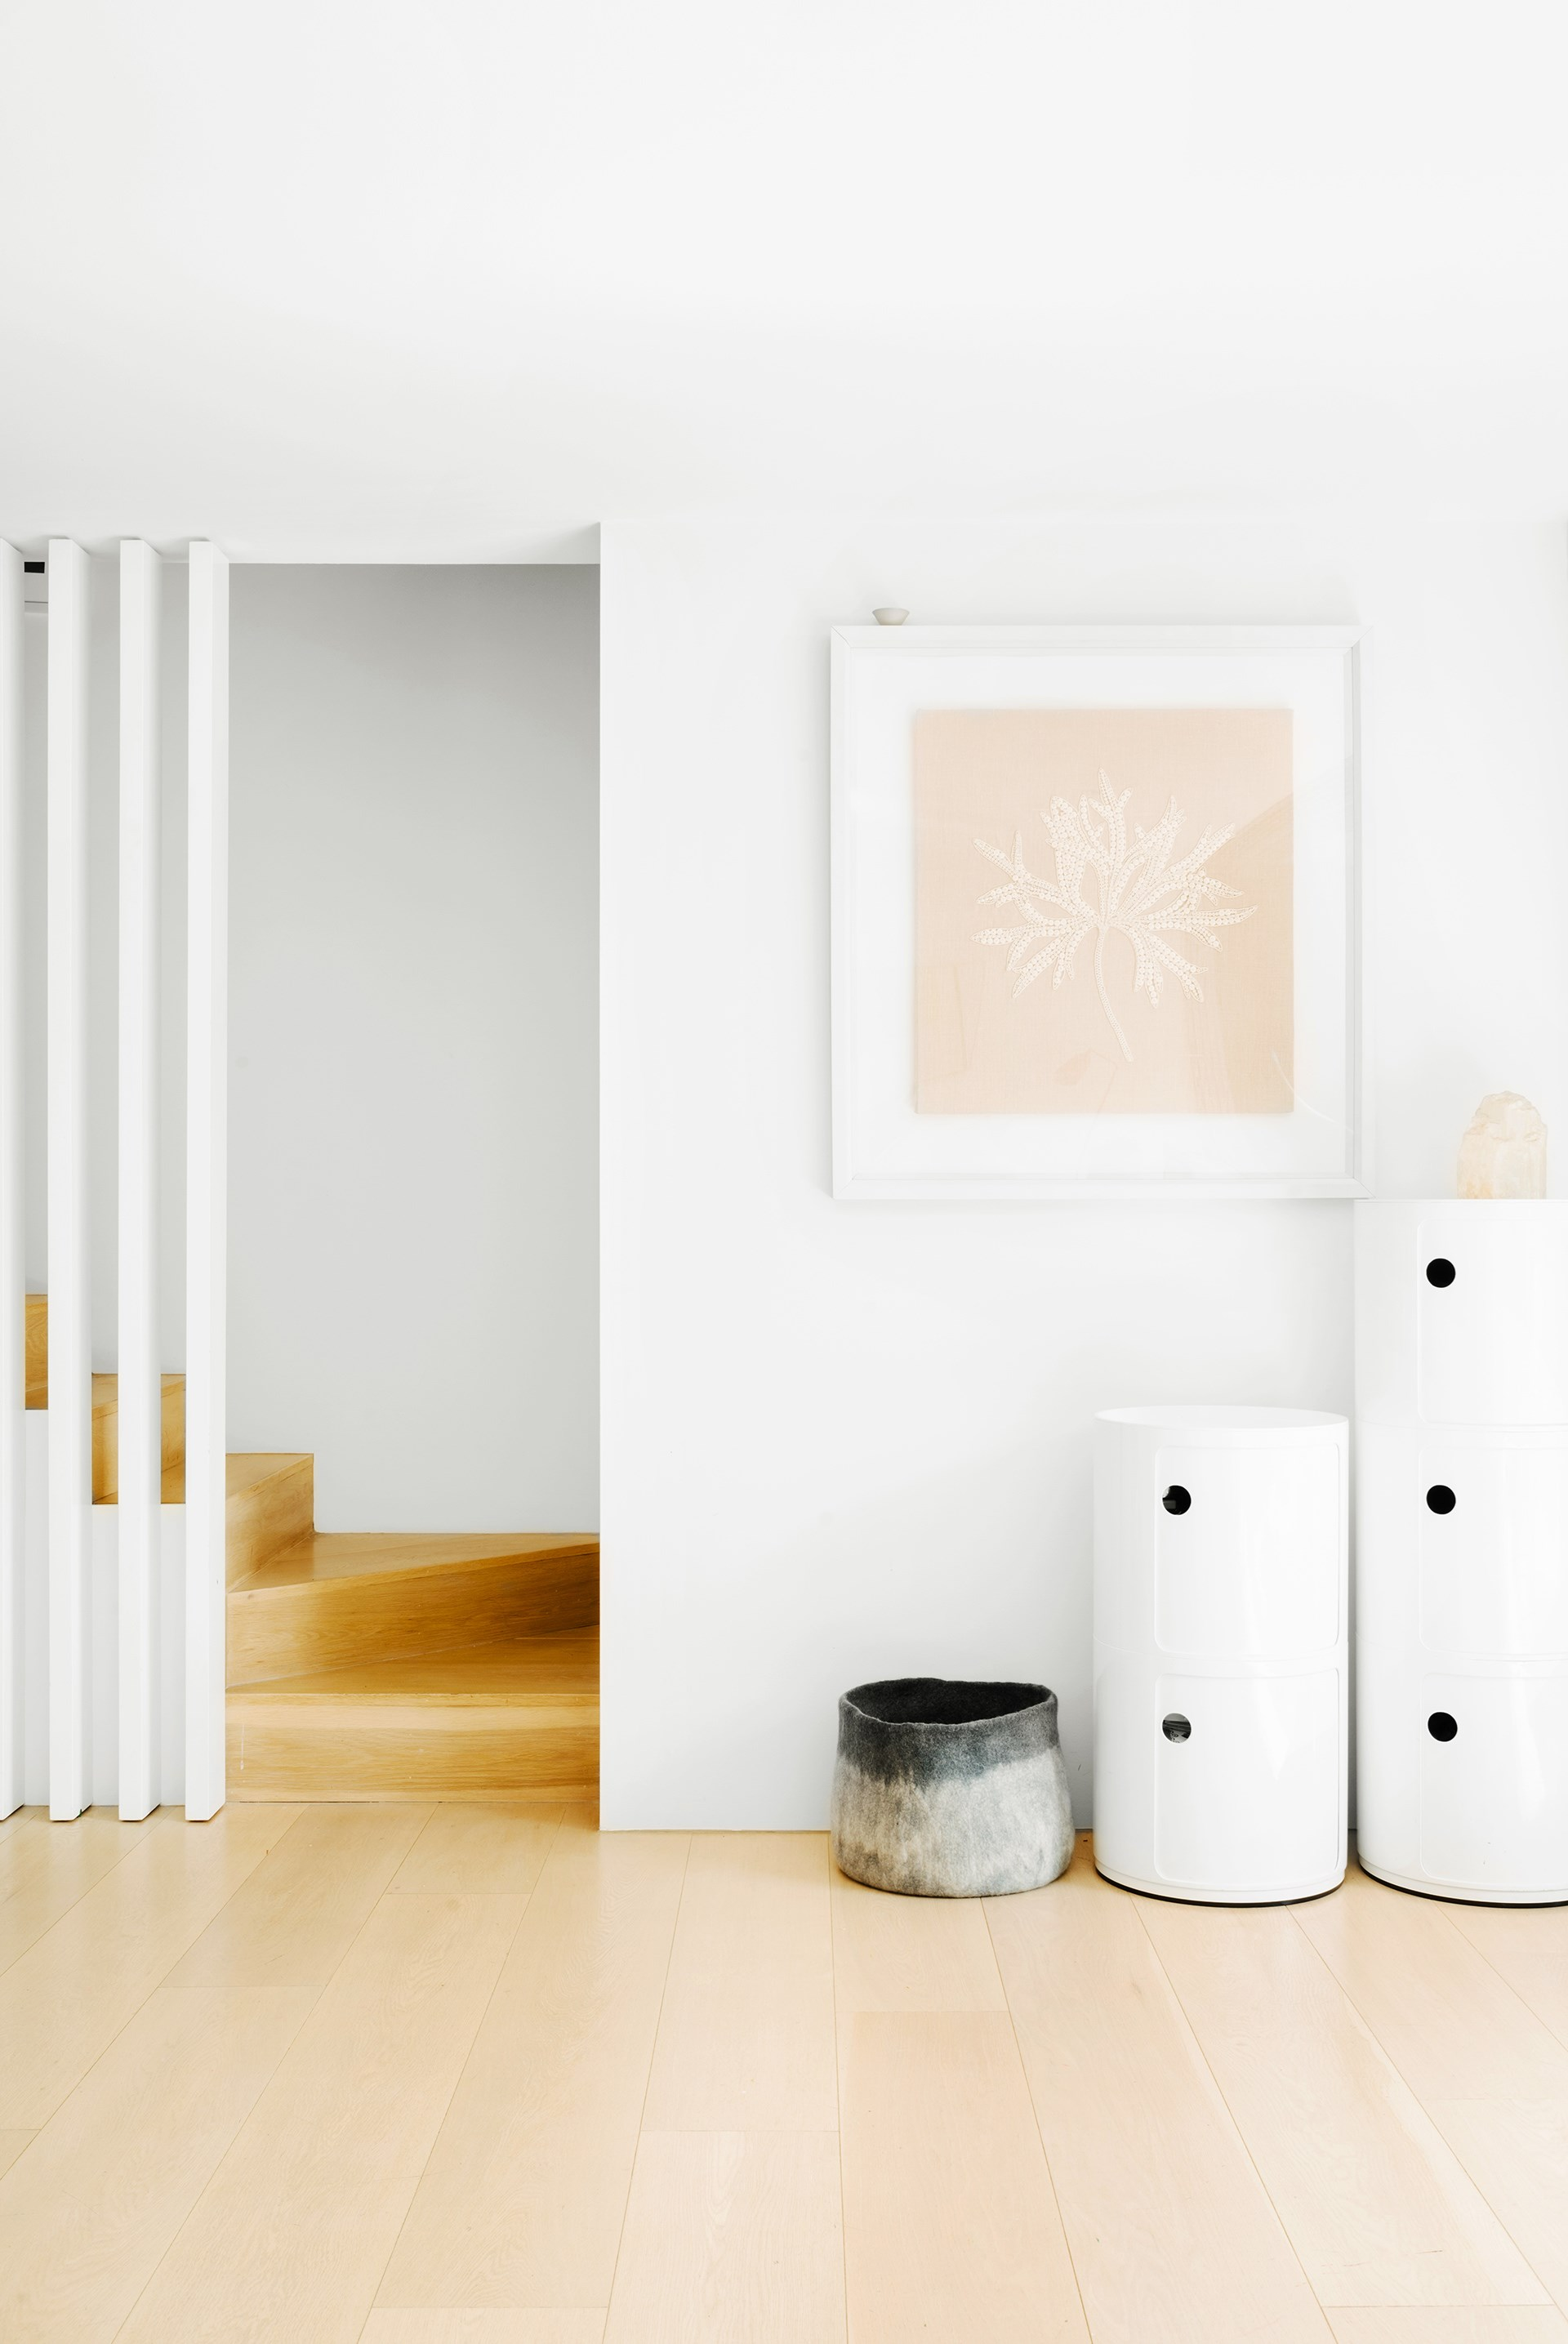 """**2017 – SCANDI** <br><br> [Scandi style](https://www.homestolove.com.au/scandi-style-decorating-tips-3132